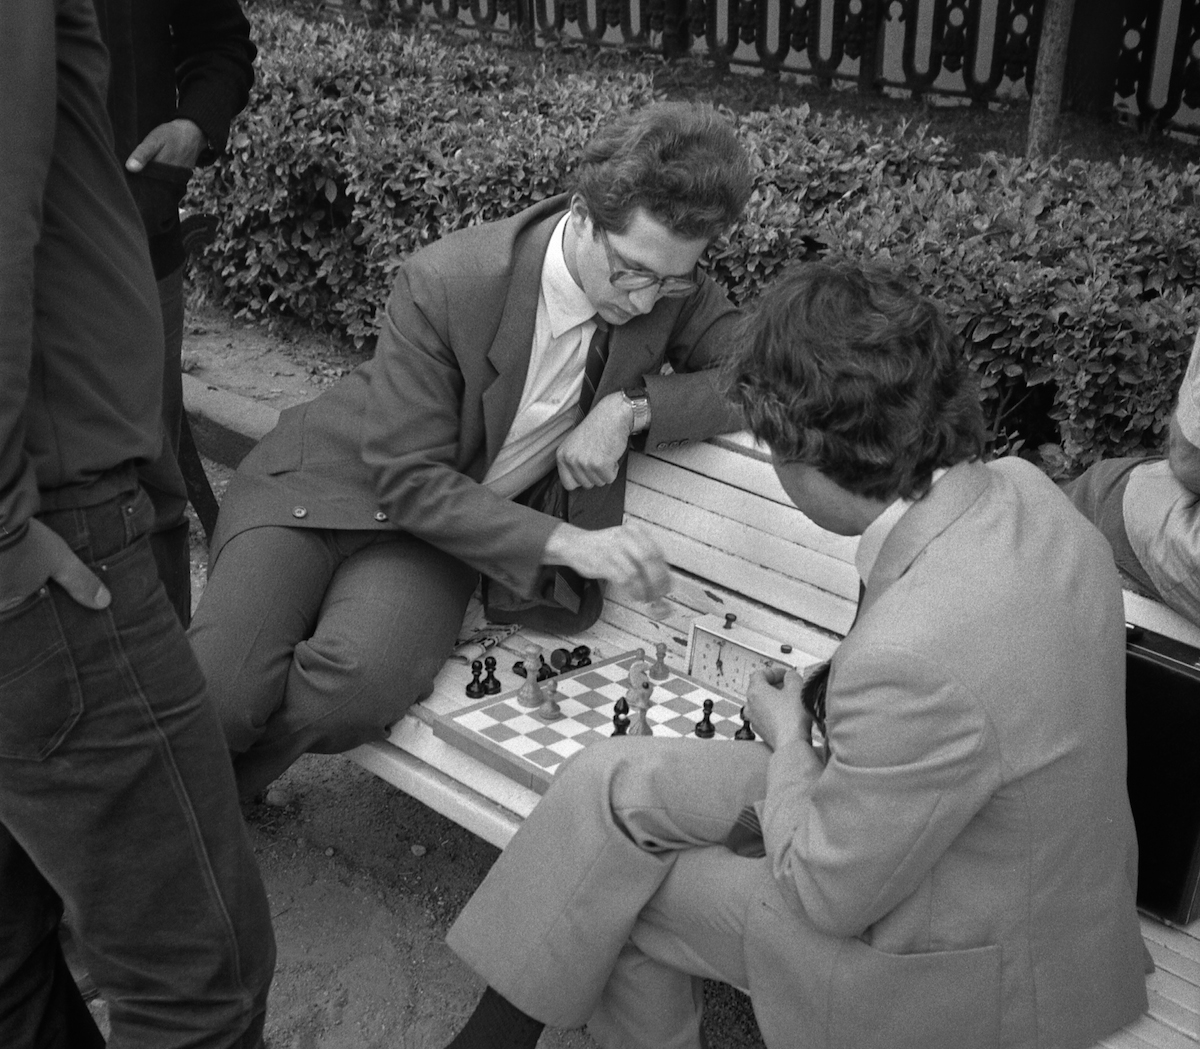 It seems like chess was a popular game among the residents of Moscow in 1980s